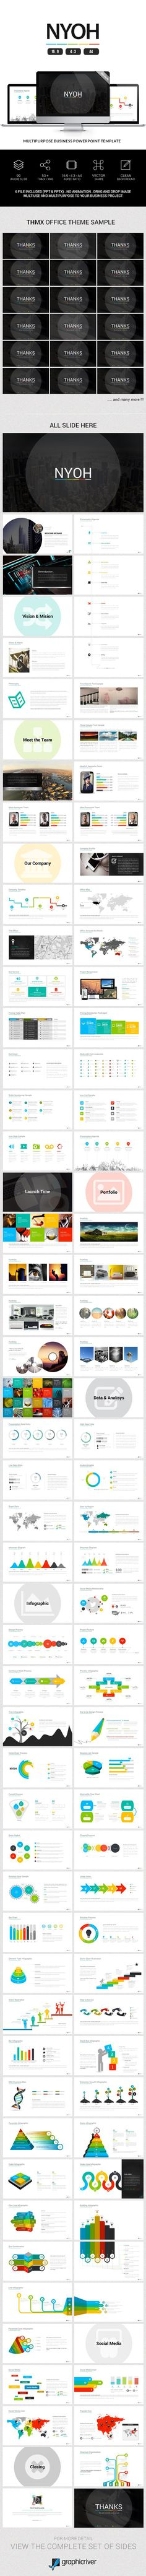 Nyoh Business Powerpoint — Powerpoint PPT #presentation #modern • Download ➝ https://graphicriver.net/item/nyoh-business-powerpoint/19263420?ref=pxcr